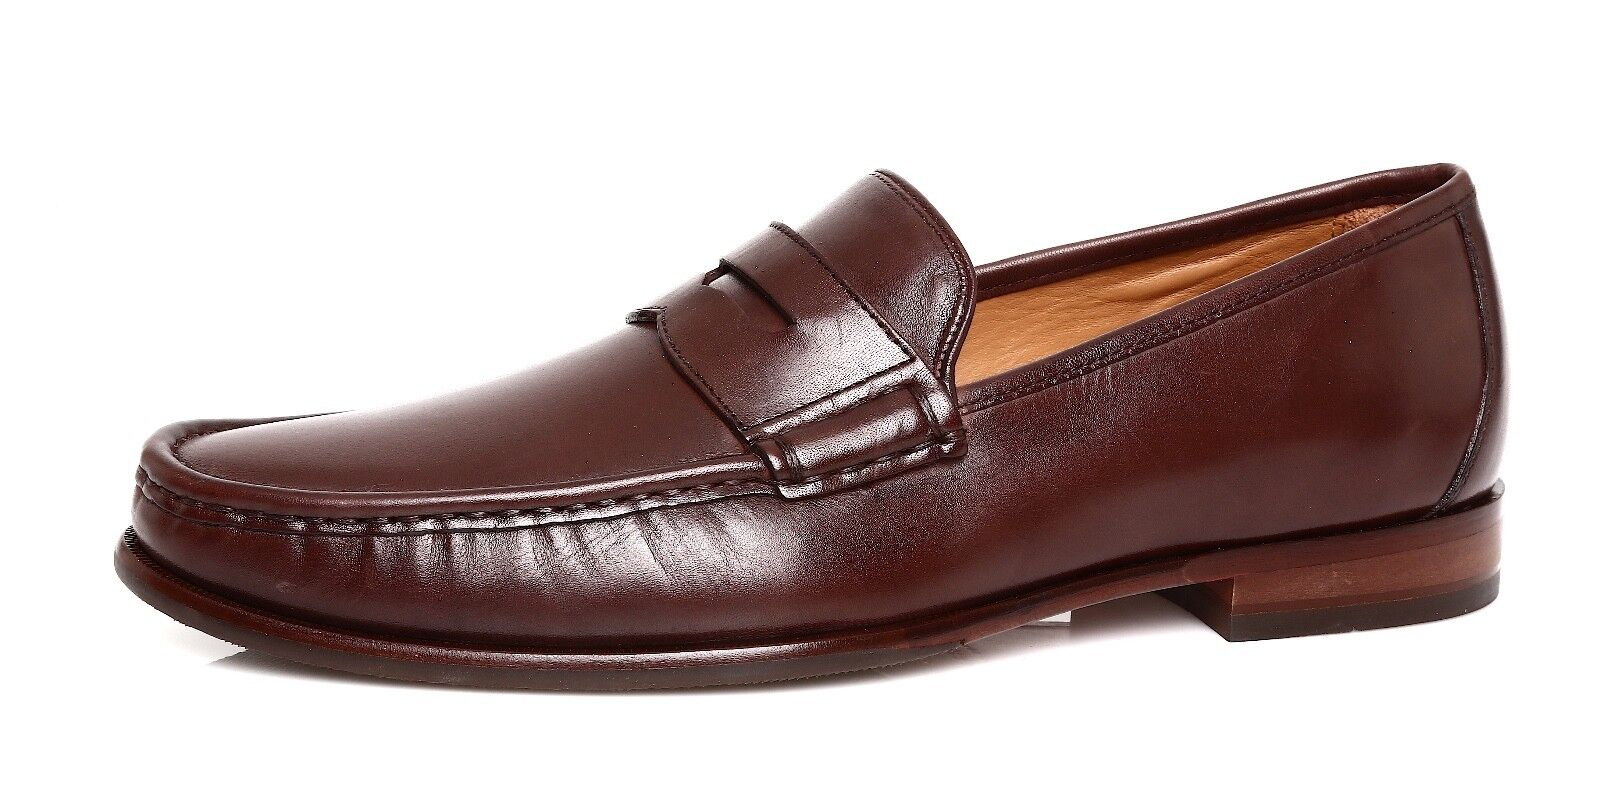 Cole Haan Aiden Grand II Men's Brown Leather Penny Loafer Sz 10 M 1011